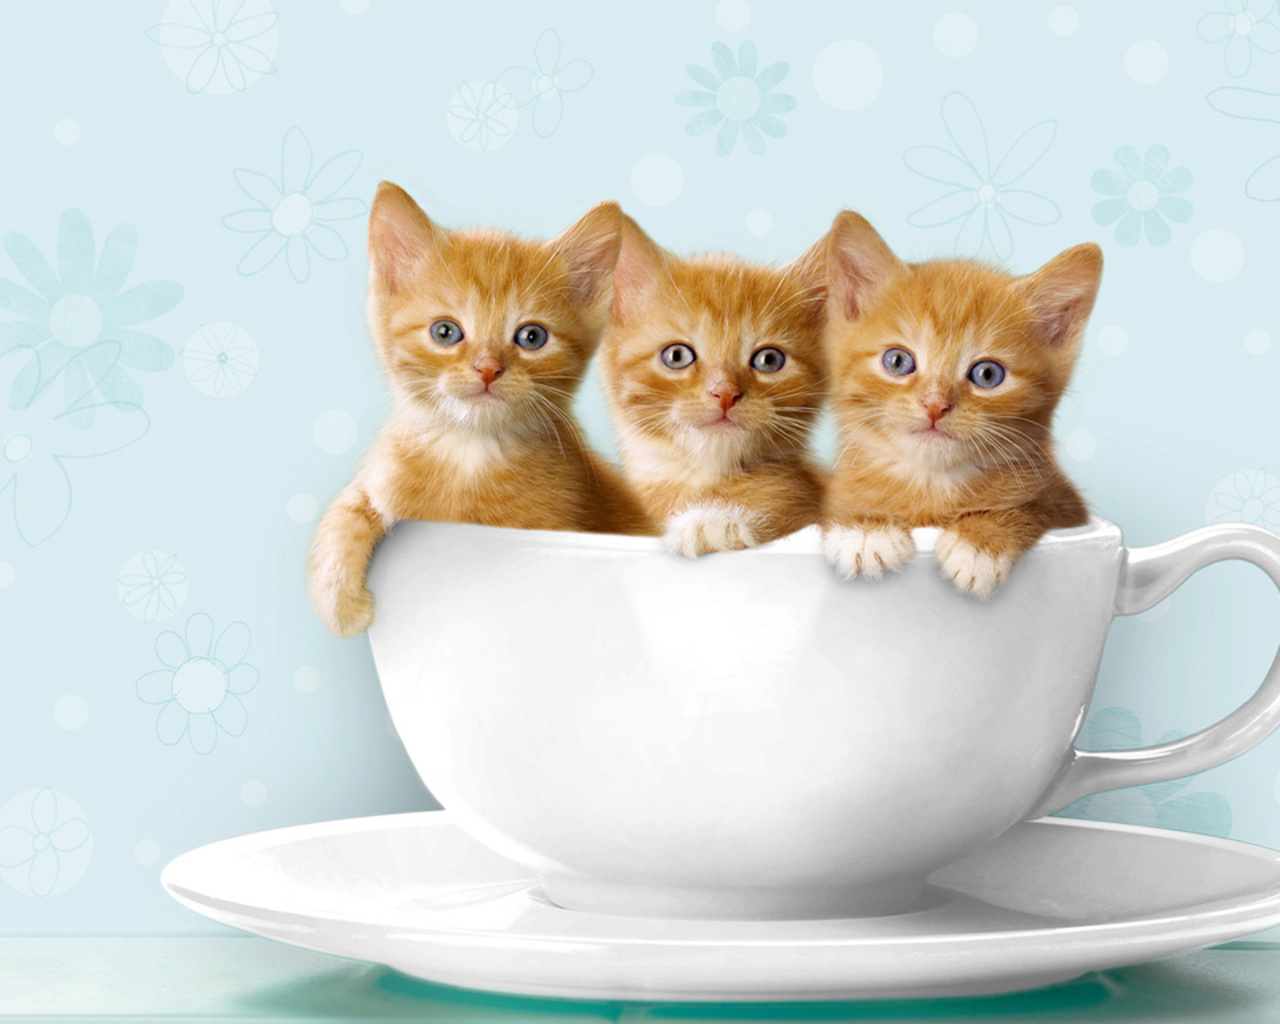 cats cups Kittens three